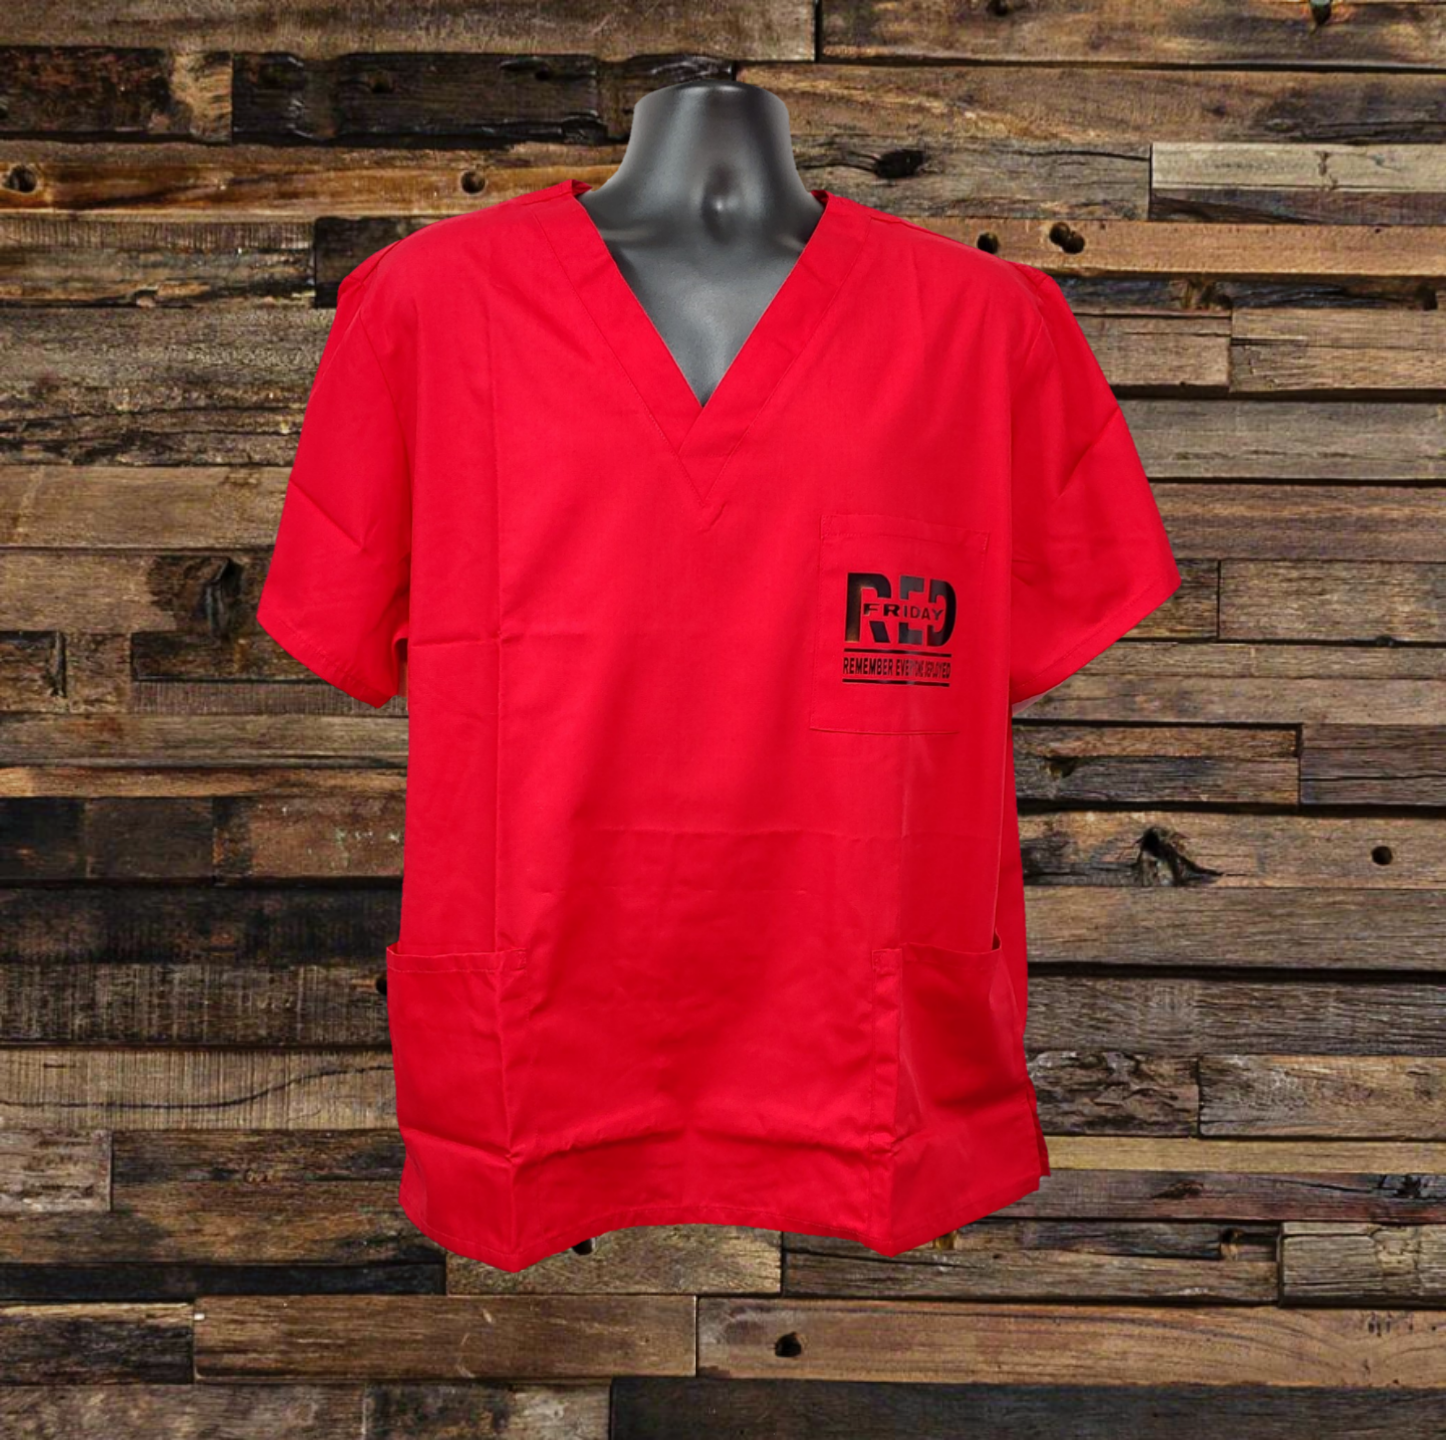 R.E.D. Scrubs Top